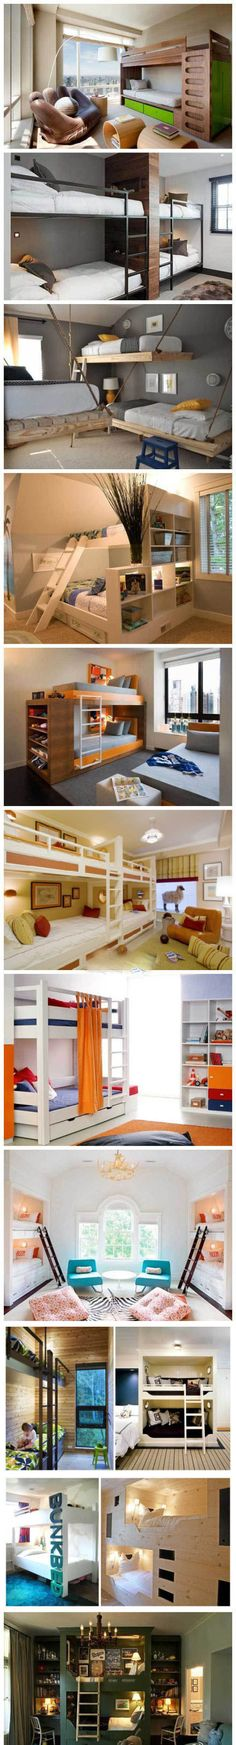 dorm room ideas. dream on.